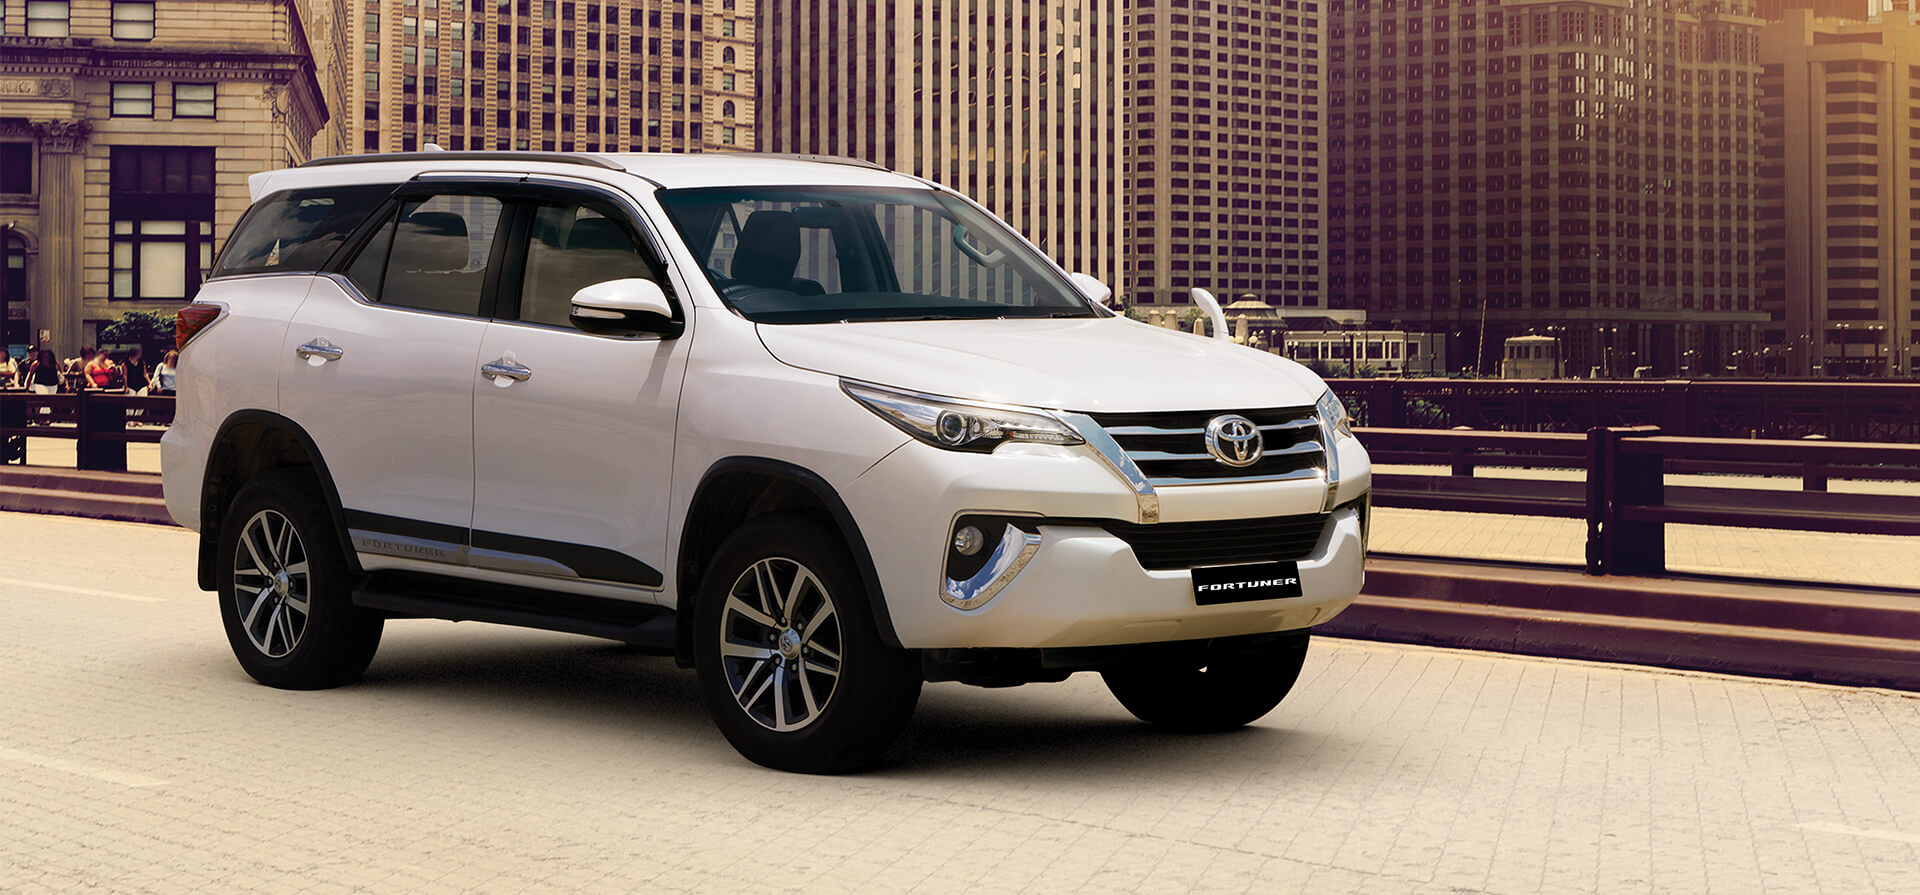 Toyota India Official Toyota Fortuner Site Fortuner Price